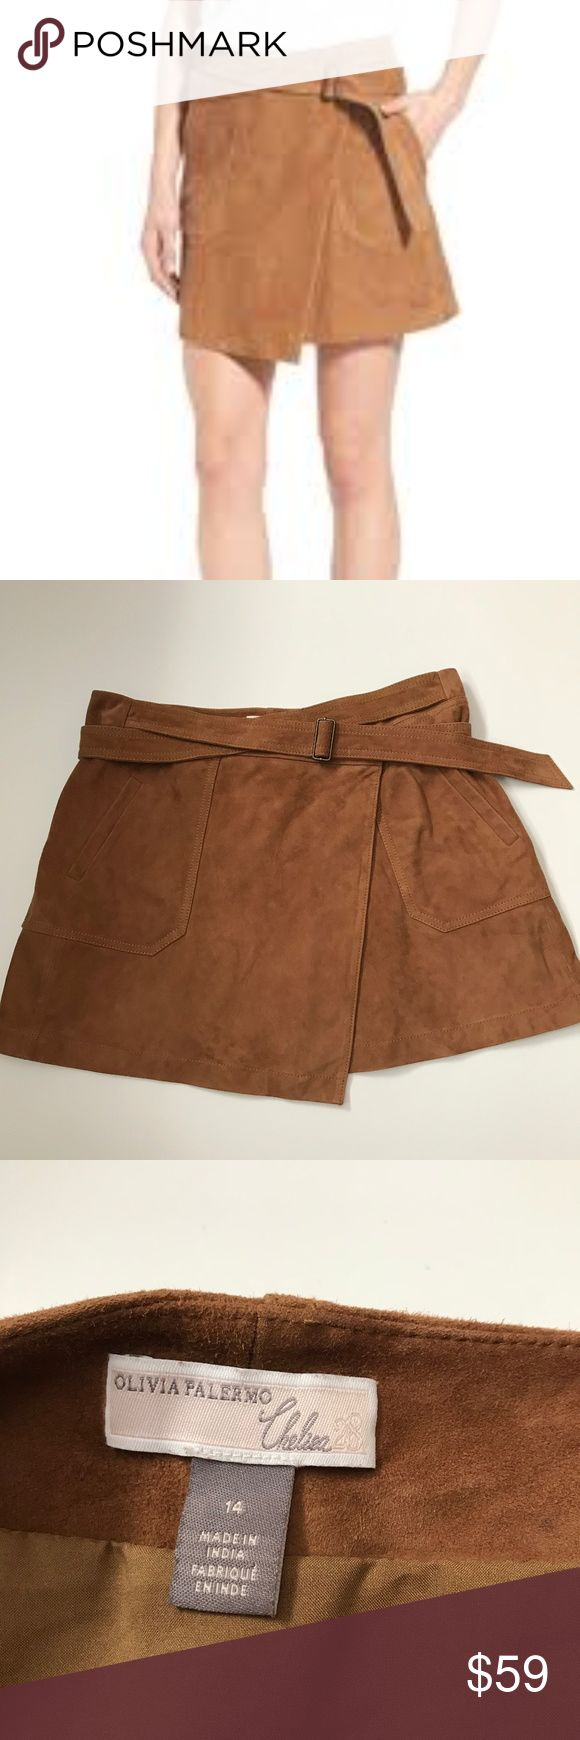 """Olivia Palermo Chelsea28 Suede Wrap Skirt - nwot Excellent condition, no flaws, never worn Buttery-soft suede leather elevates a leg-flaunting miniskirt styled in an ultra-chic wrap silhouette and cinched at the waist by a crisscrossing adjustable belt. Sleek front patch pockets finish this '70s-inspired look. measures: 17"""" across top of waist, 16.5"""" in length. olivia palermo Chelsea28 Skirts Mini"""